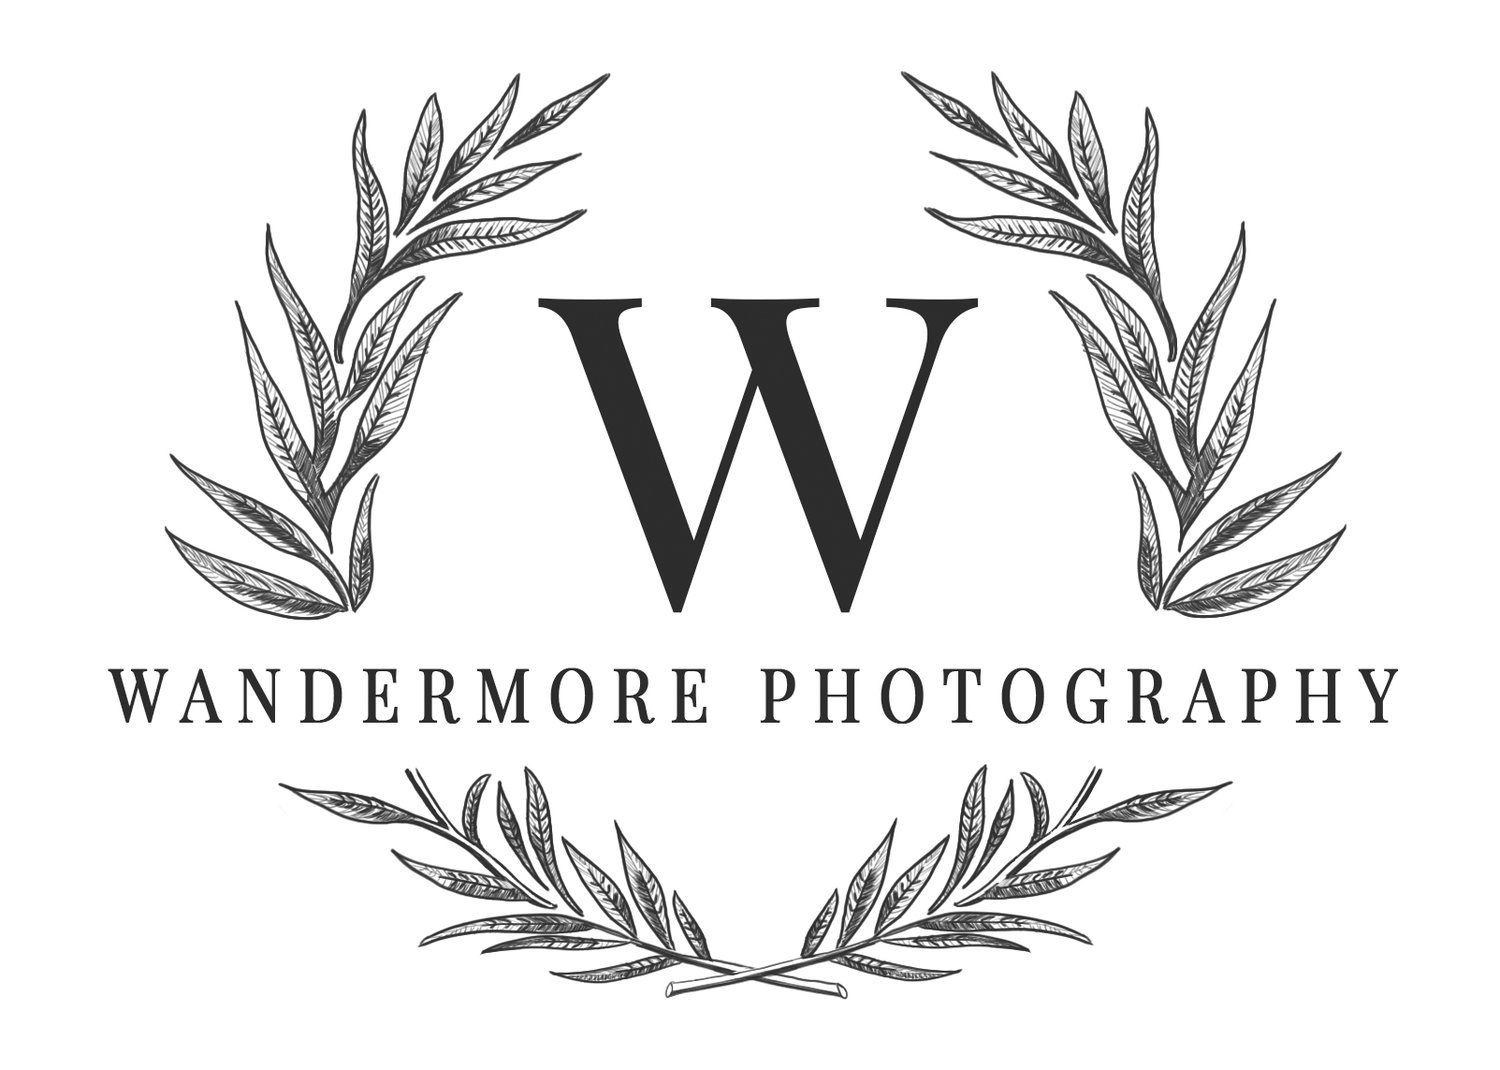 Wandermore Photography